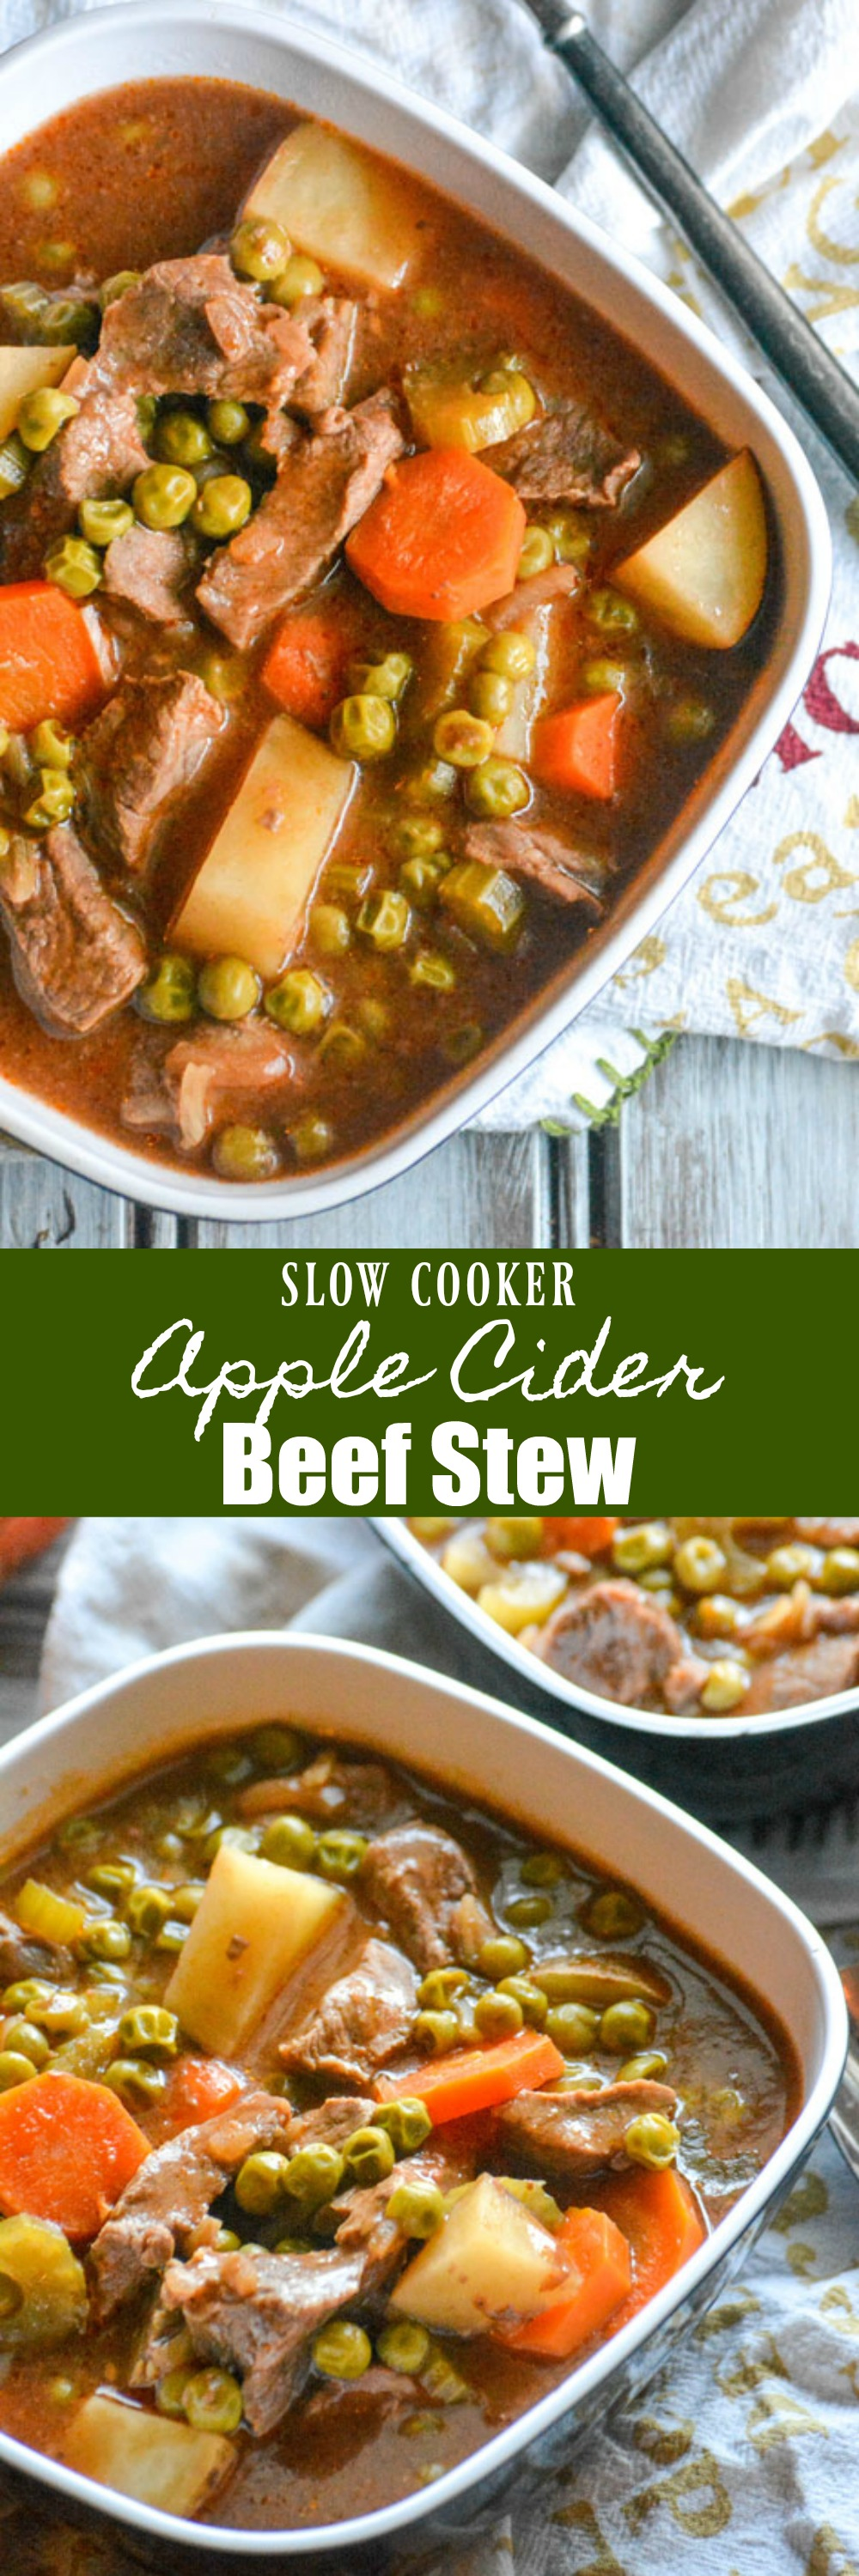 Cold weather got you feeling down? A heaping helping of this hearty slow cooked Apple Cider Beef Stew is just the kind of stick to your ribs lunch or dinner to lift your spirits. It even travels well, making it perfect for sharing. #soup #beefstew #slowcooker #crockpot #applecider